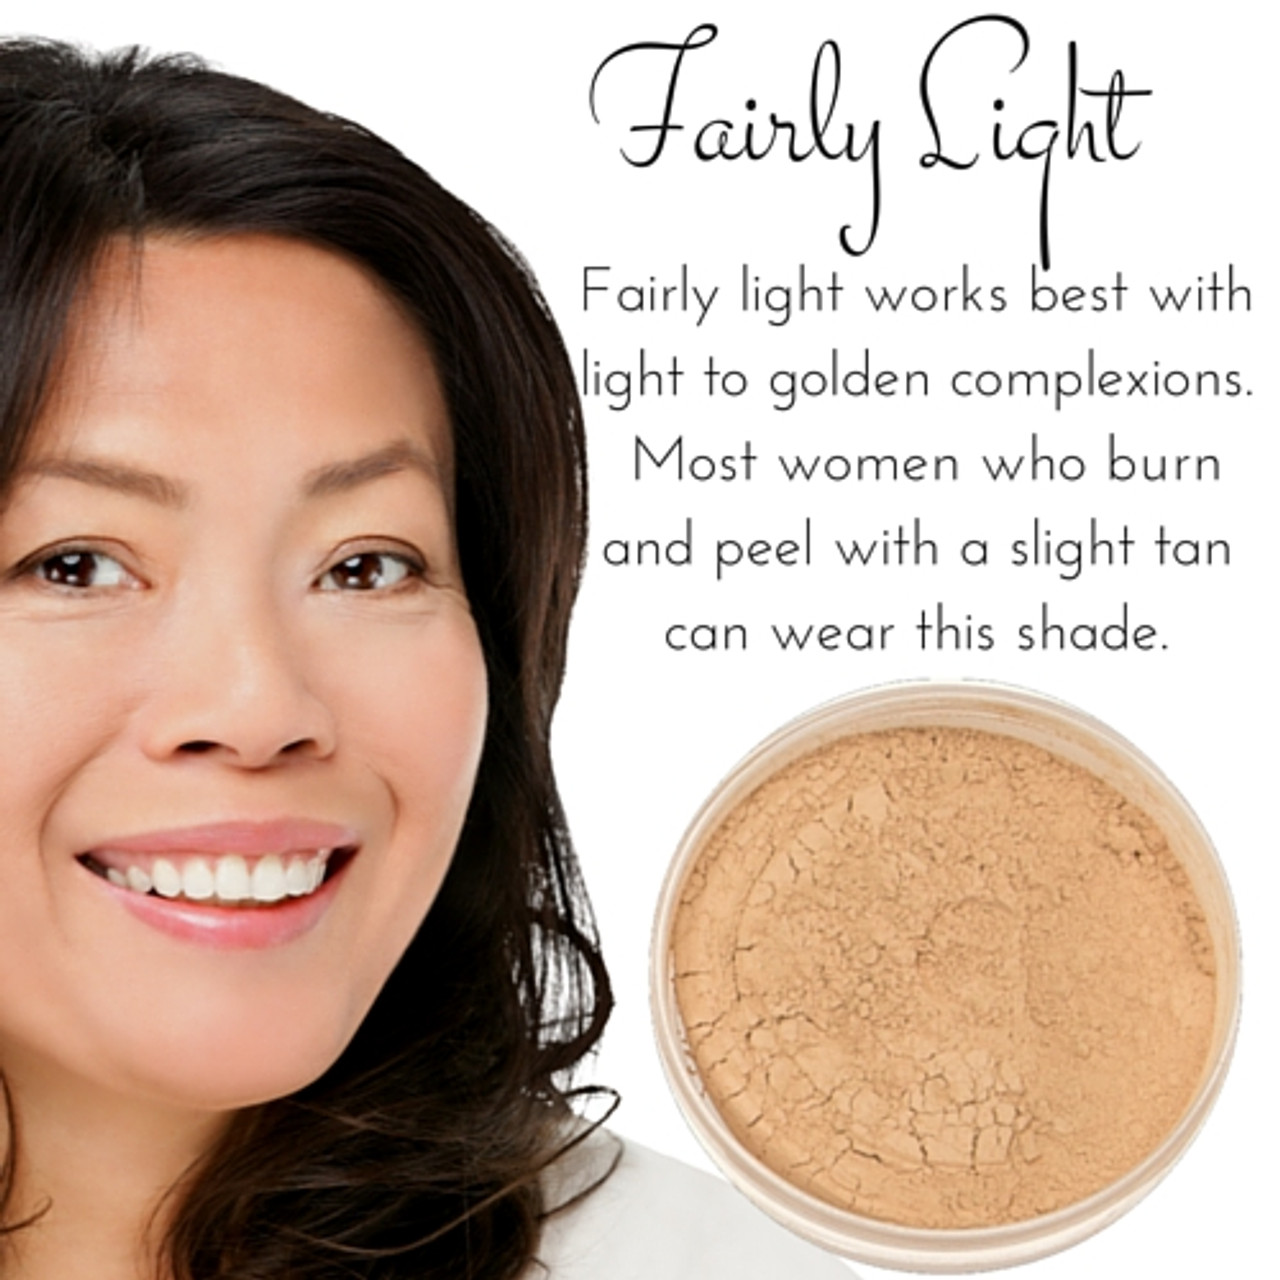 Full Coverage Matte Mineral Foundation Fairly Light Smm Cosmetics